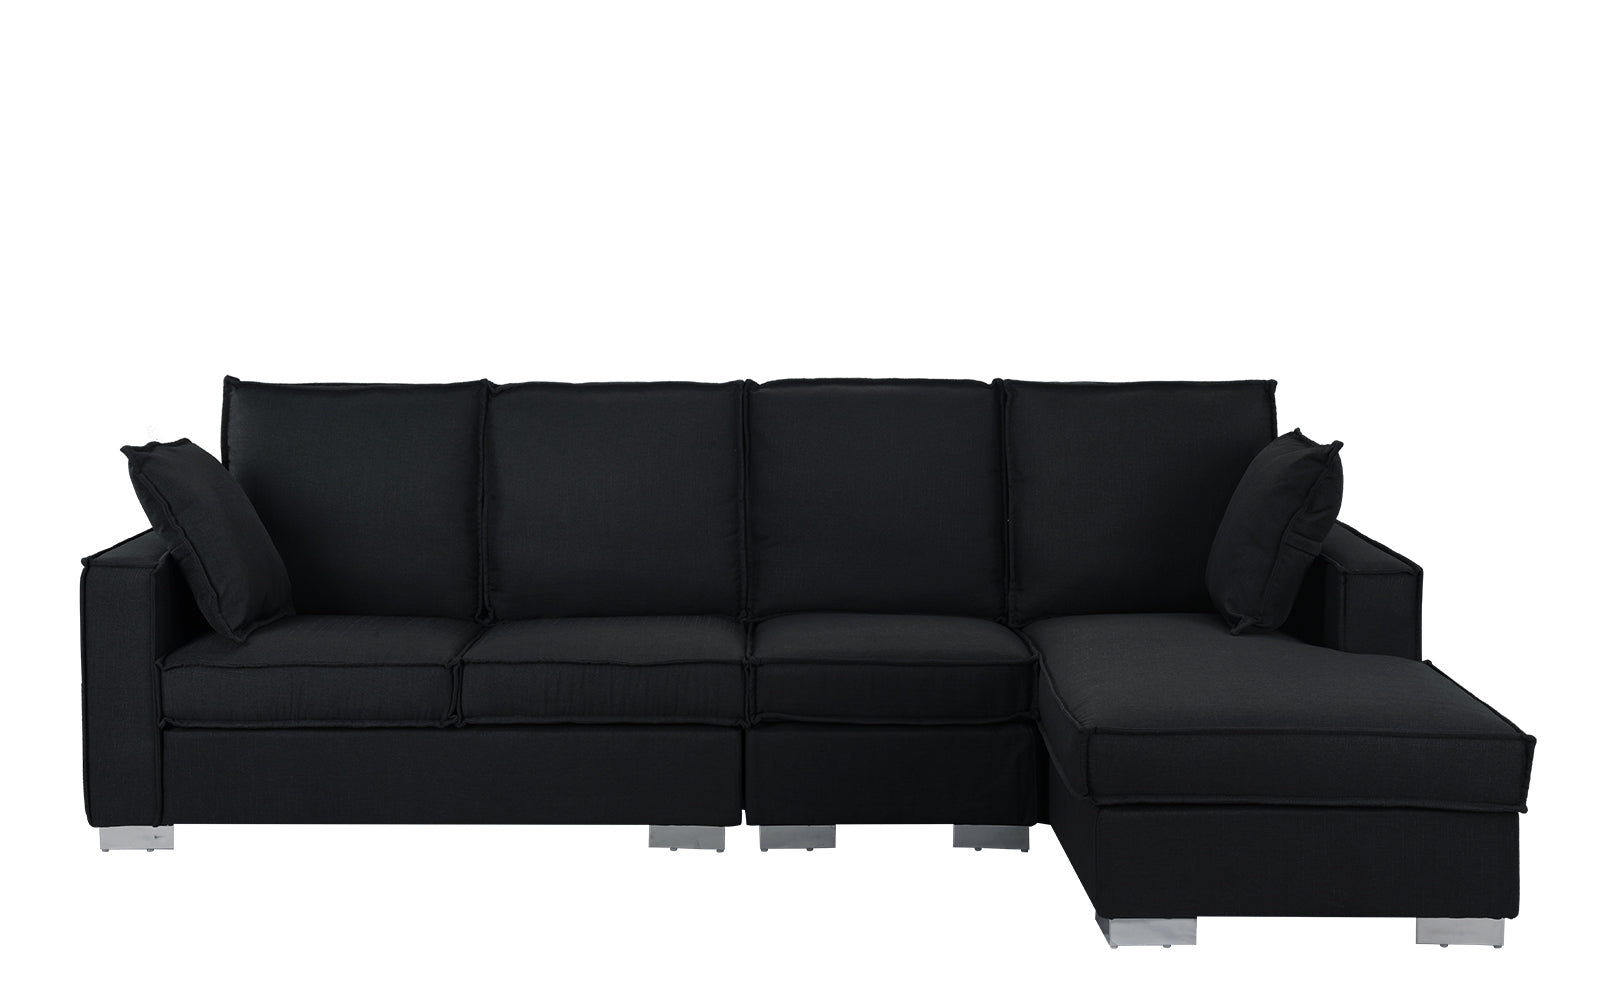 Enjoyable Arden L Shape Sectional Sofa Inzonedesignstudio Interior Chair Design Inzonedesignstudiocom